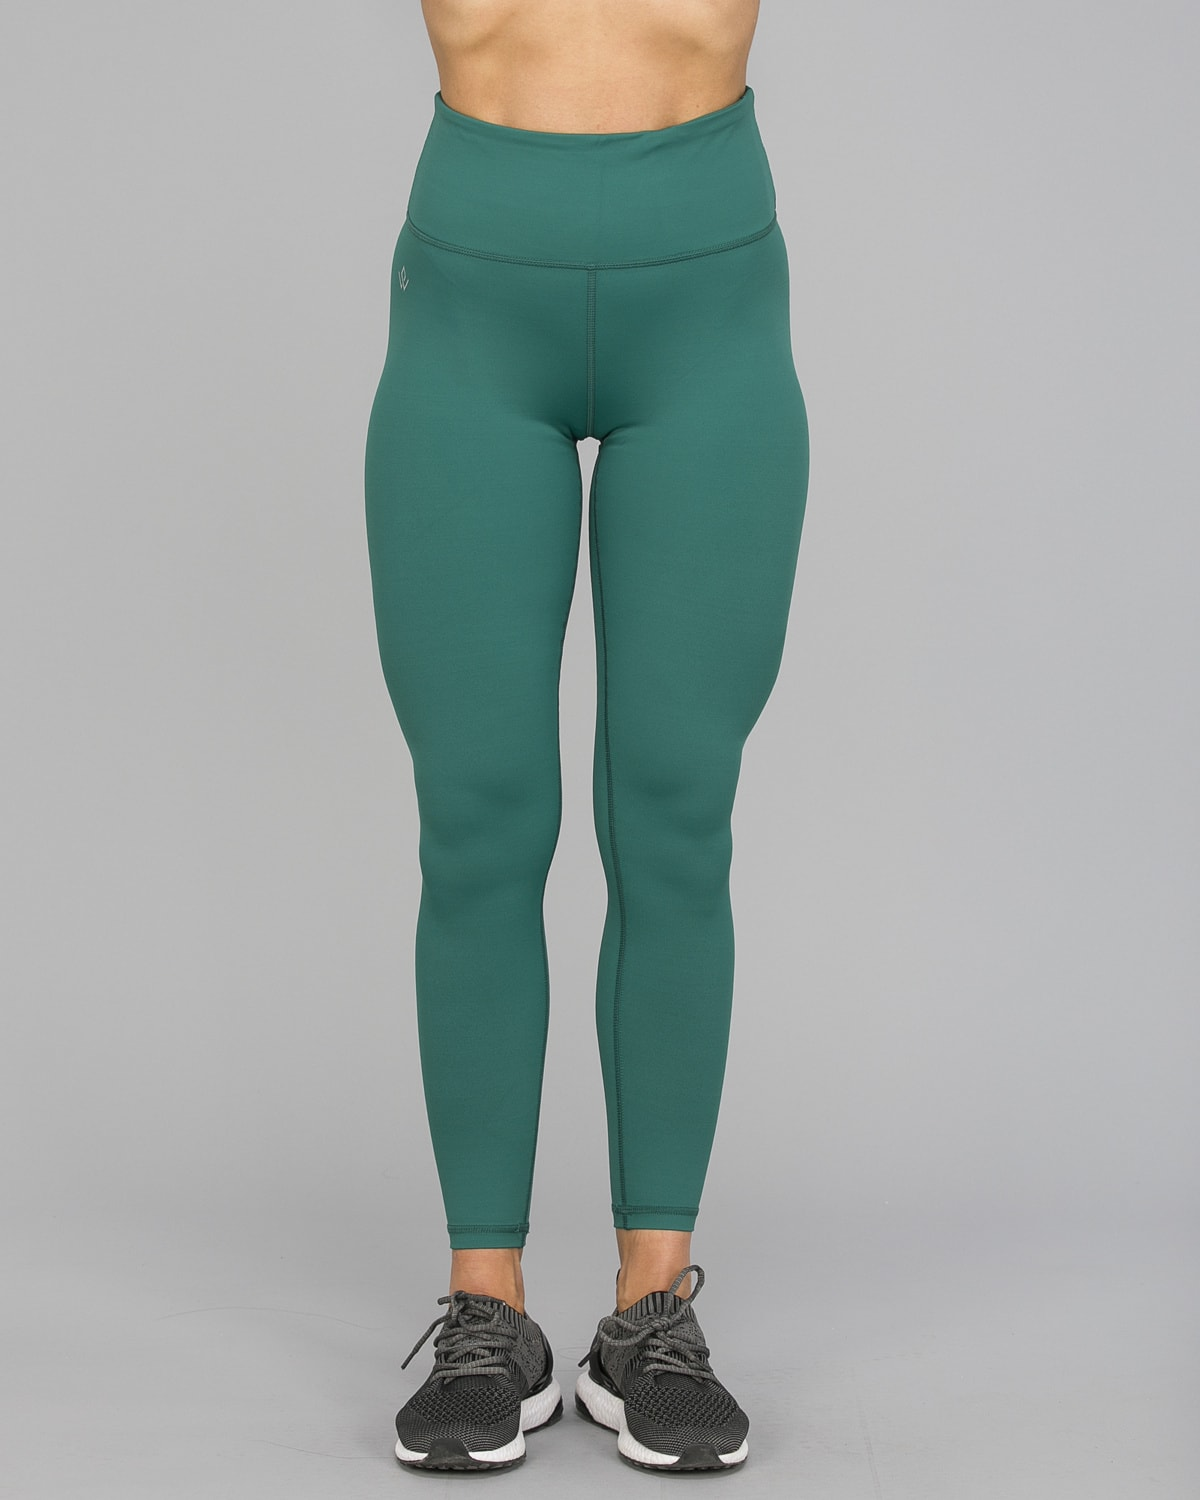 Workout Empire – With Confidence Shape Leggings – Emerald Green5